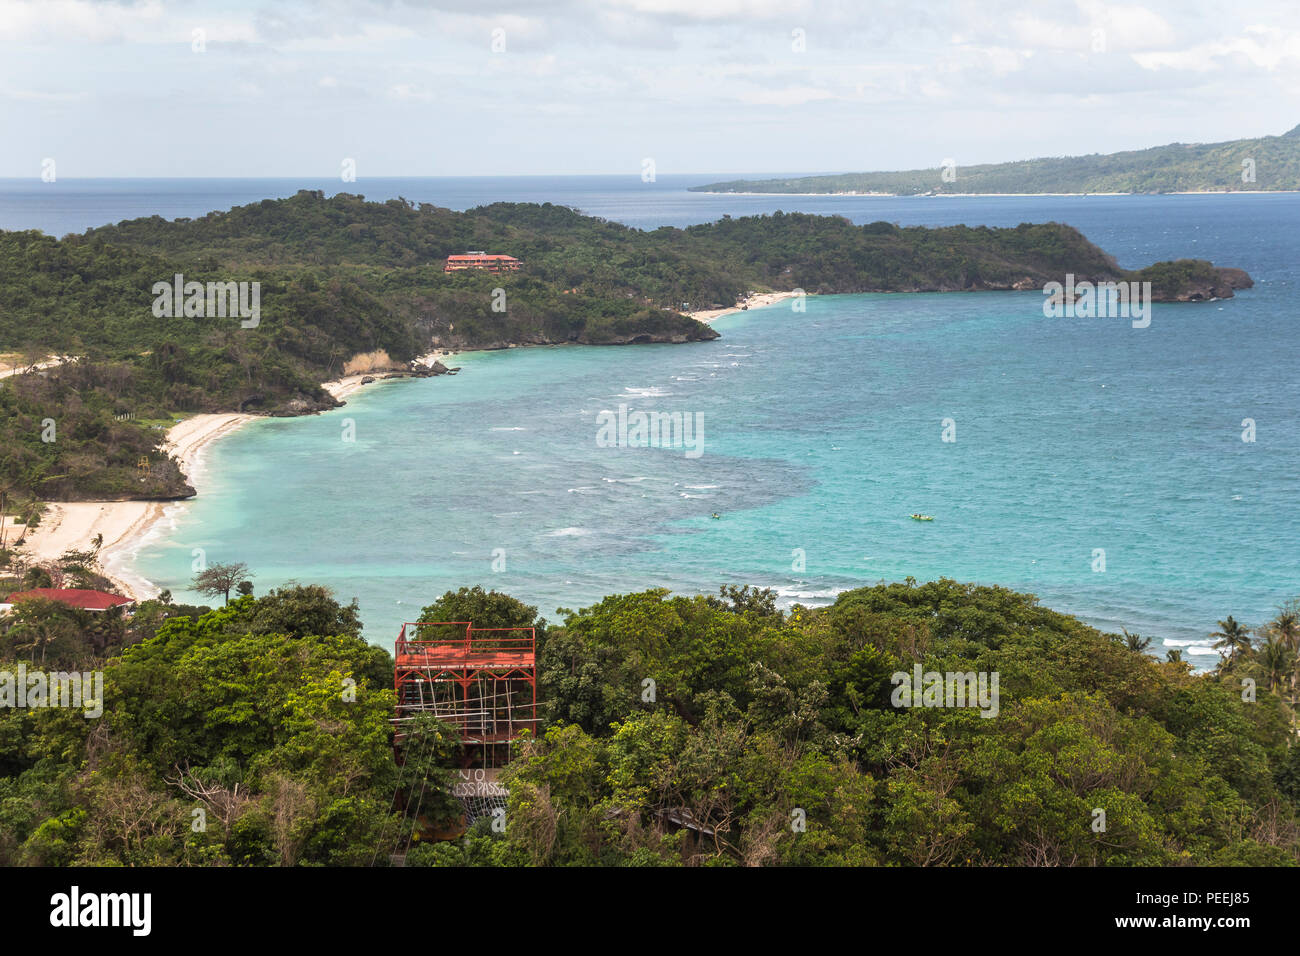 View over the island of boracay on the philippines Stock Photo